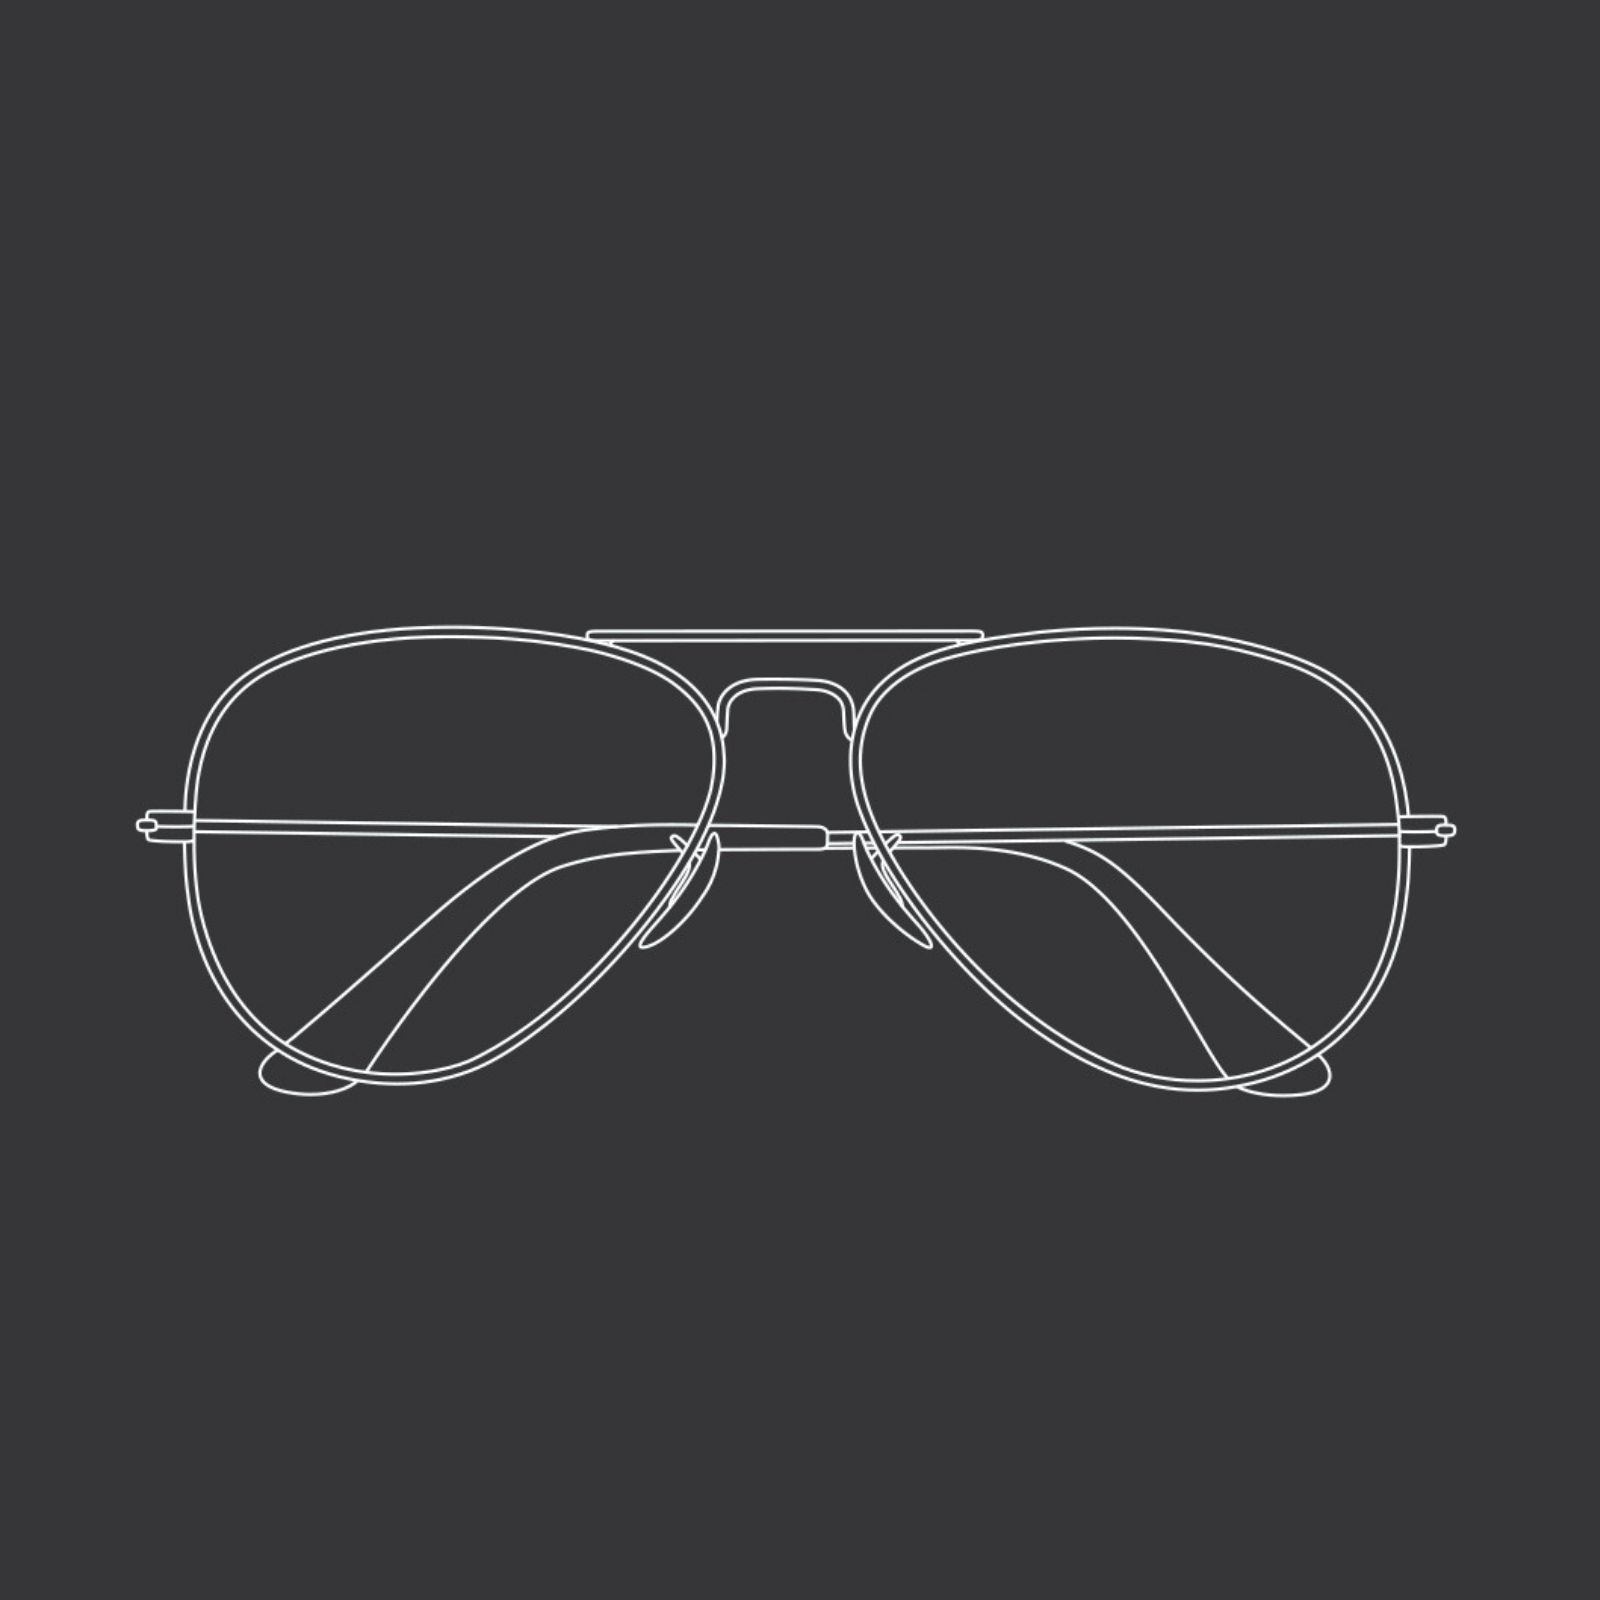 Michael Craig-Martin Glasses